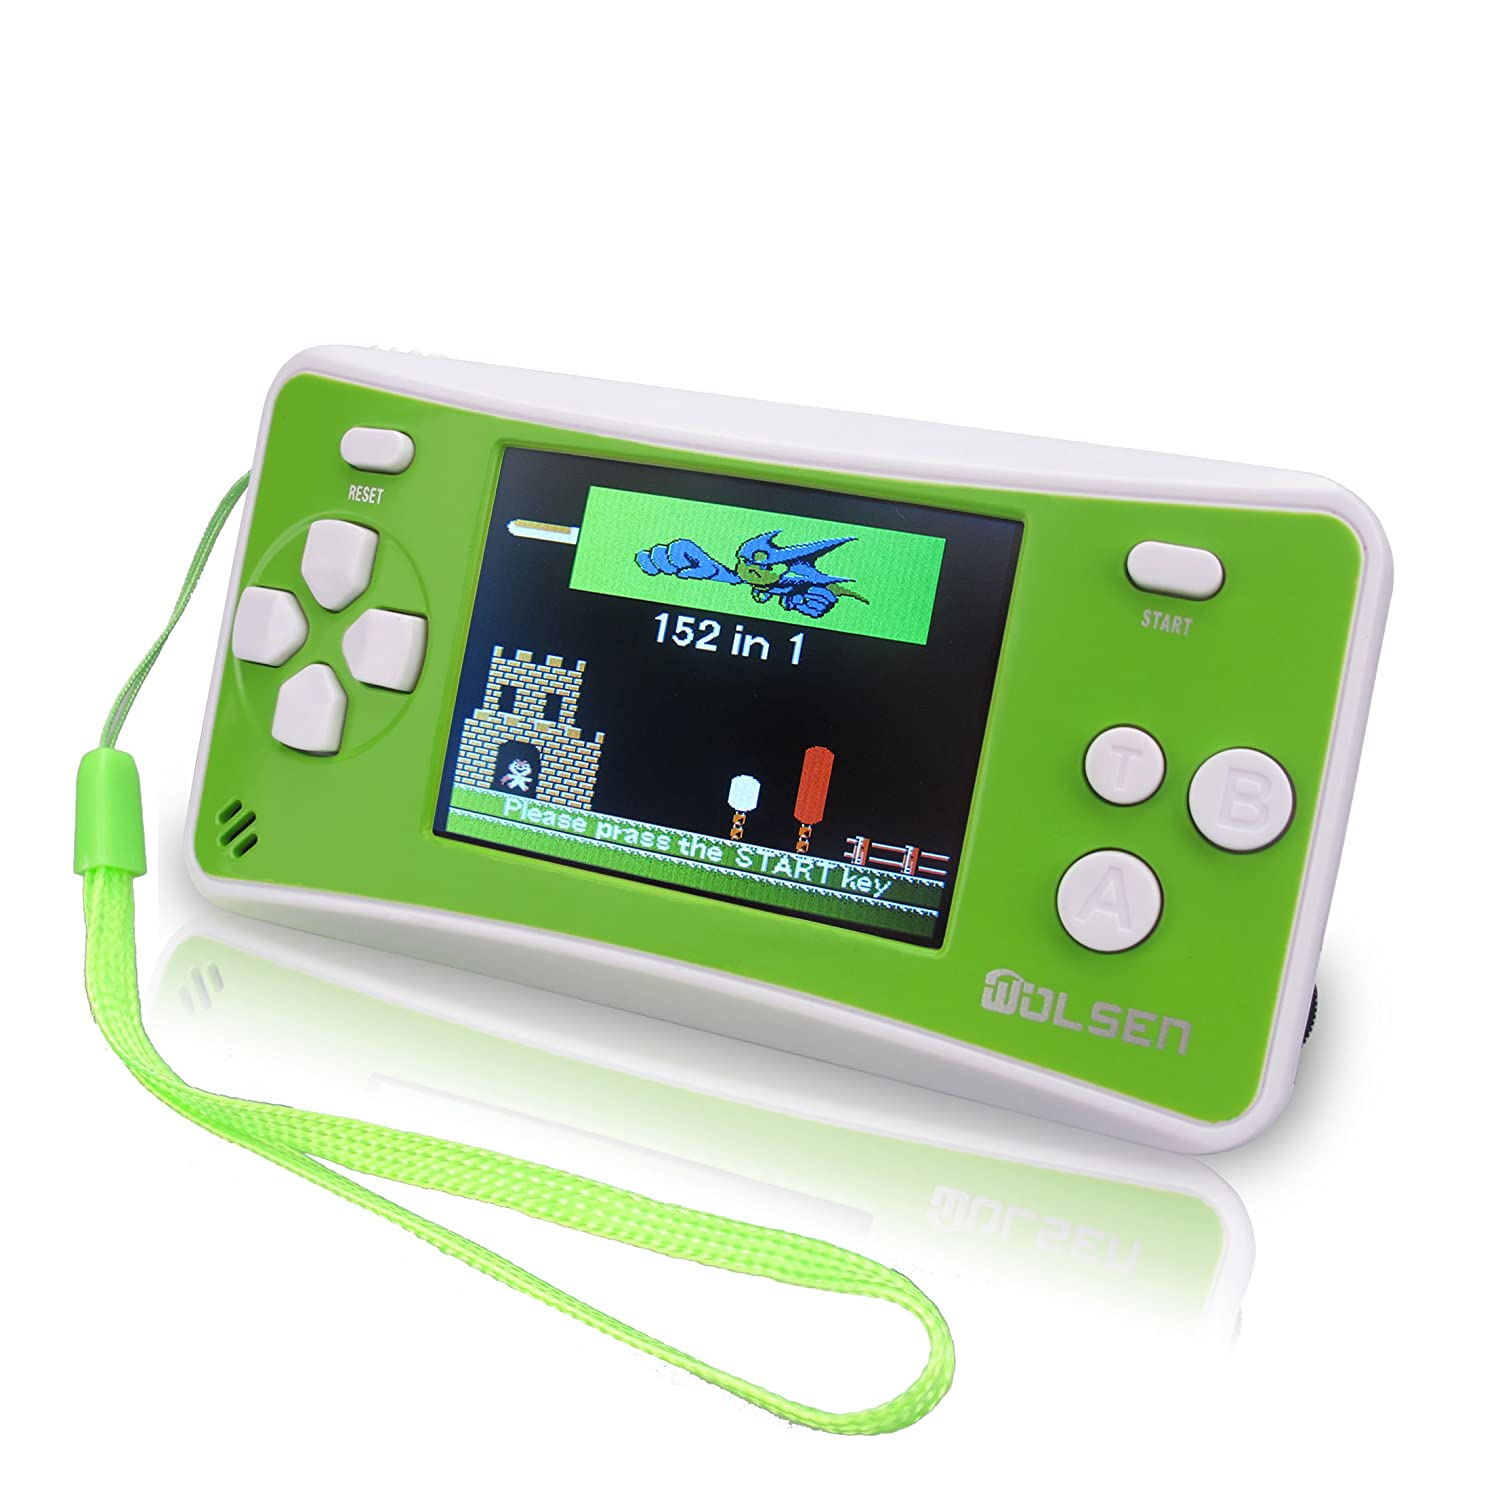 A picture of a hand-held console in yellow-green color.